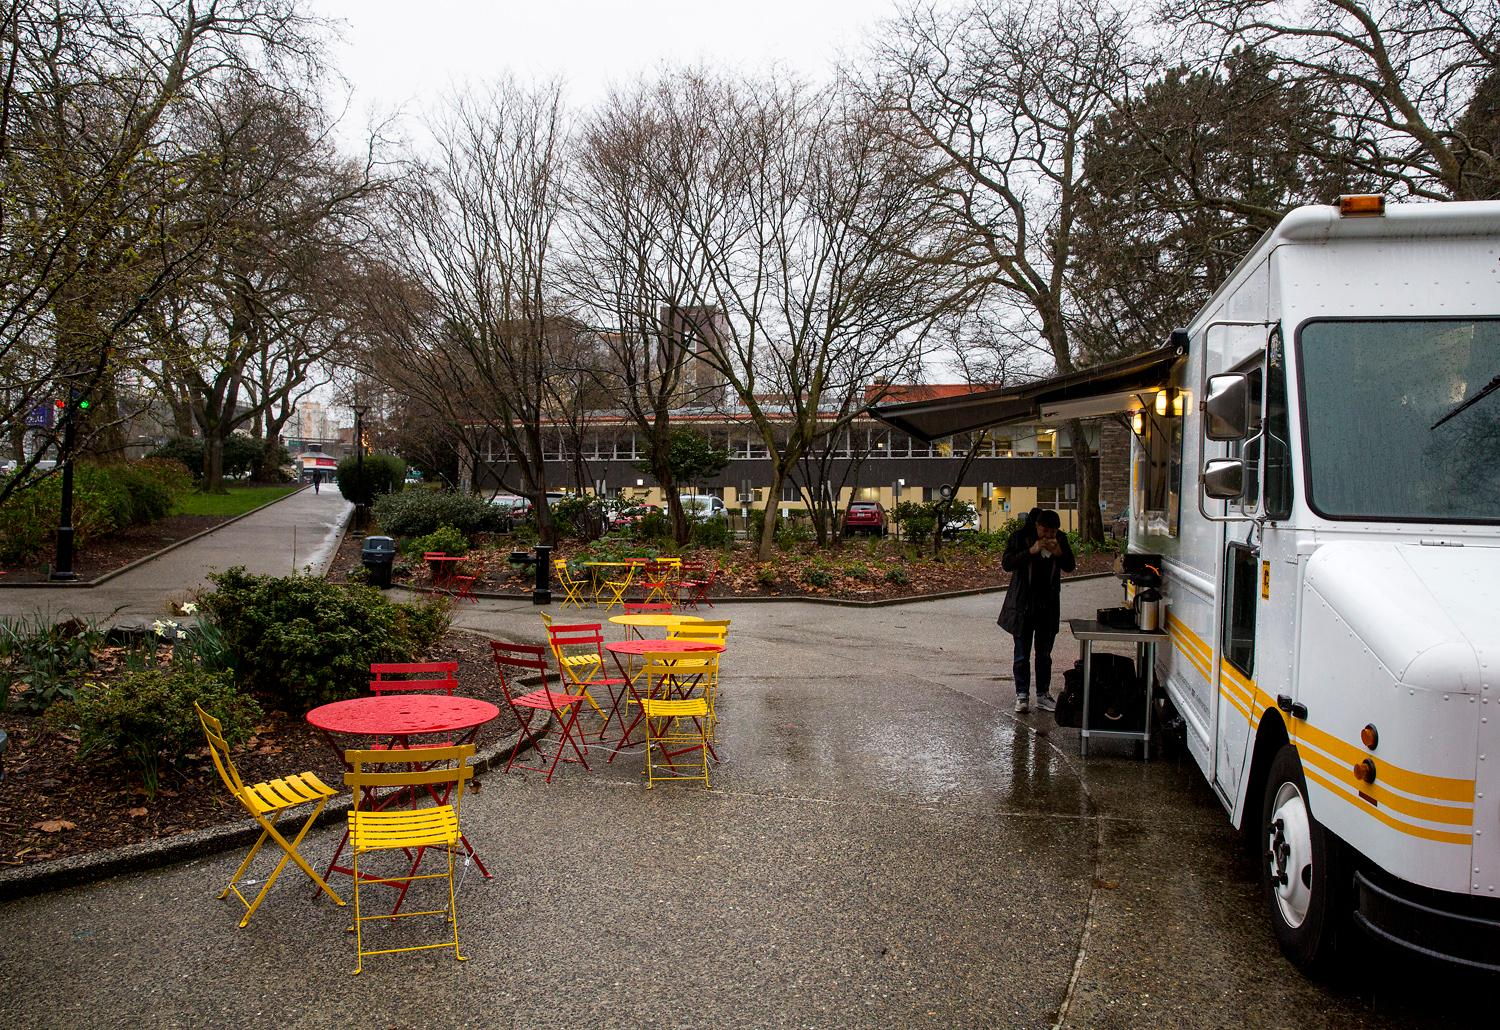 The Sunny Up food truck parked at Denny Park. The truck specializes in serving breakfast sandwiches named after the owner's favorite, most inflluential, women. (Sy Bean / Seattle Refined)